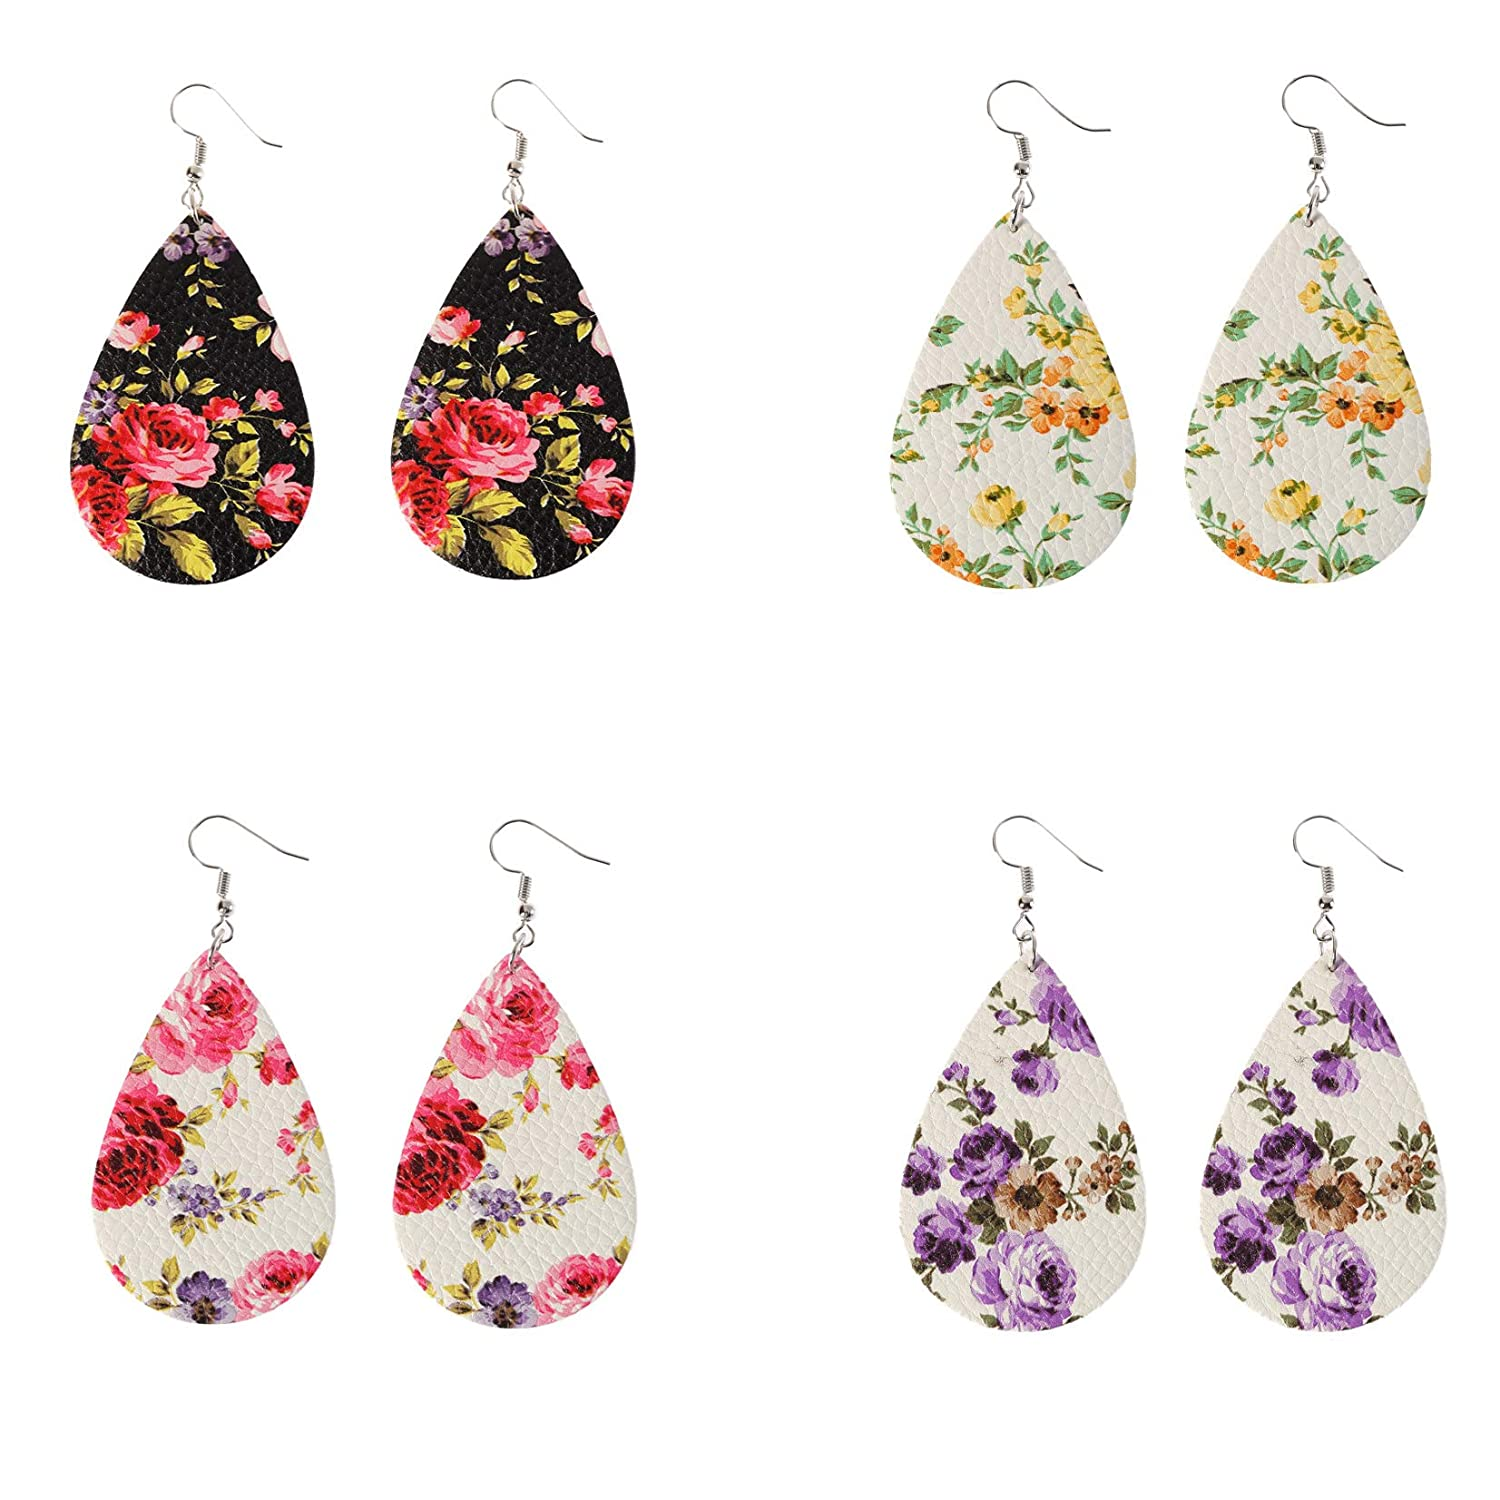 OMTBEL STOOLY 4 Pairs Faux Leather Leaf Earring for Women Girls Gifts,Bohemia Style Earring Sets Jewelry